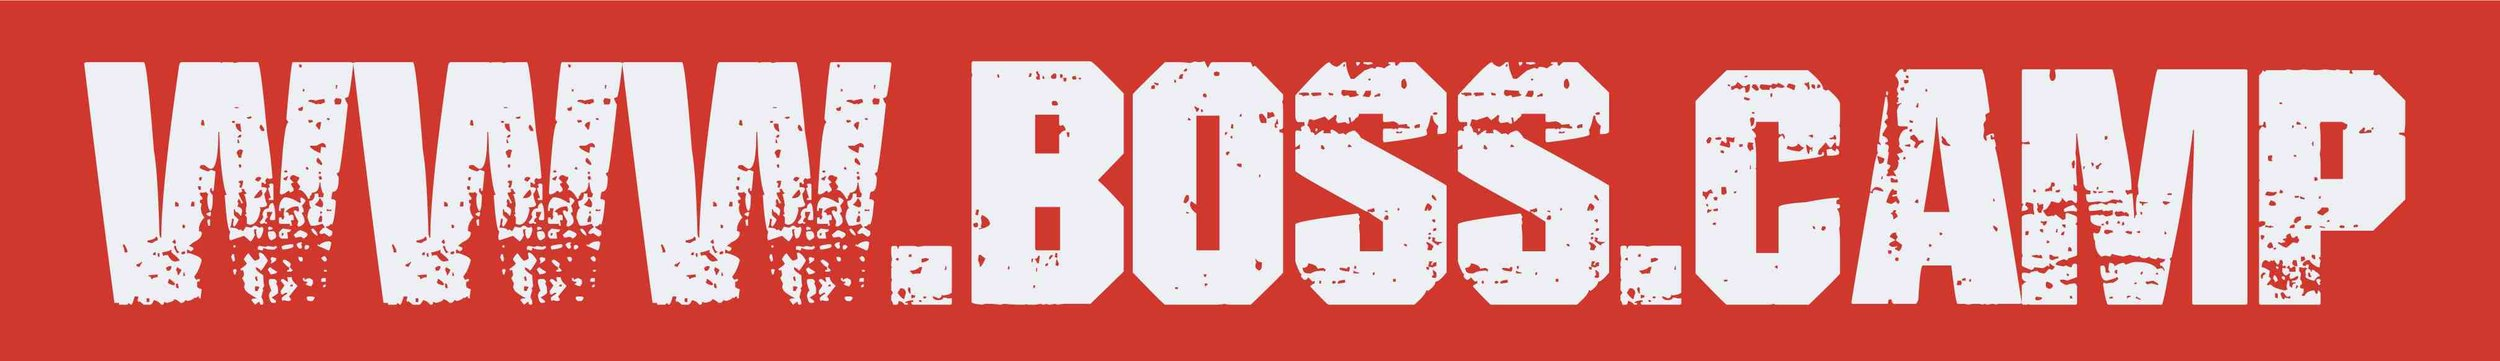 www.boss.camp will show you the best people management techniques to make work work Jpeg